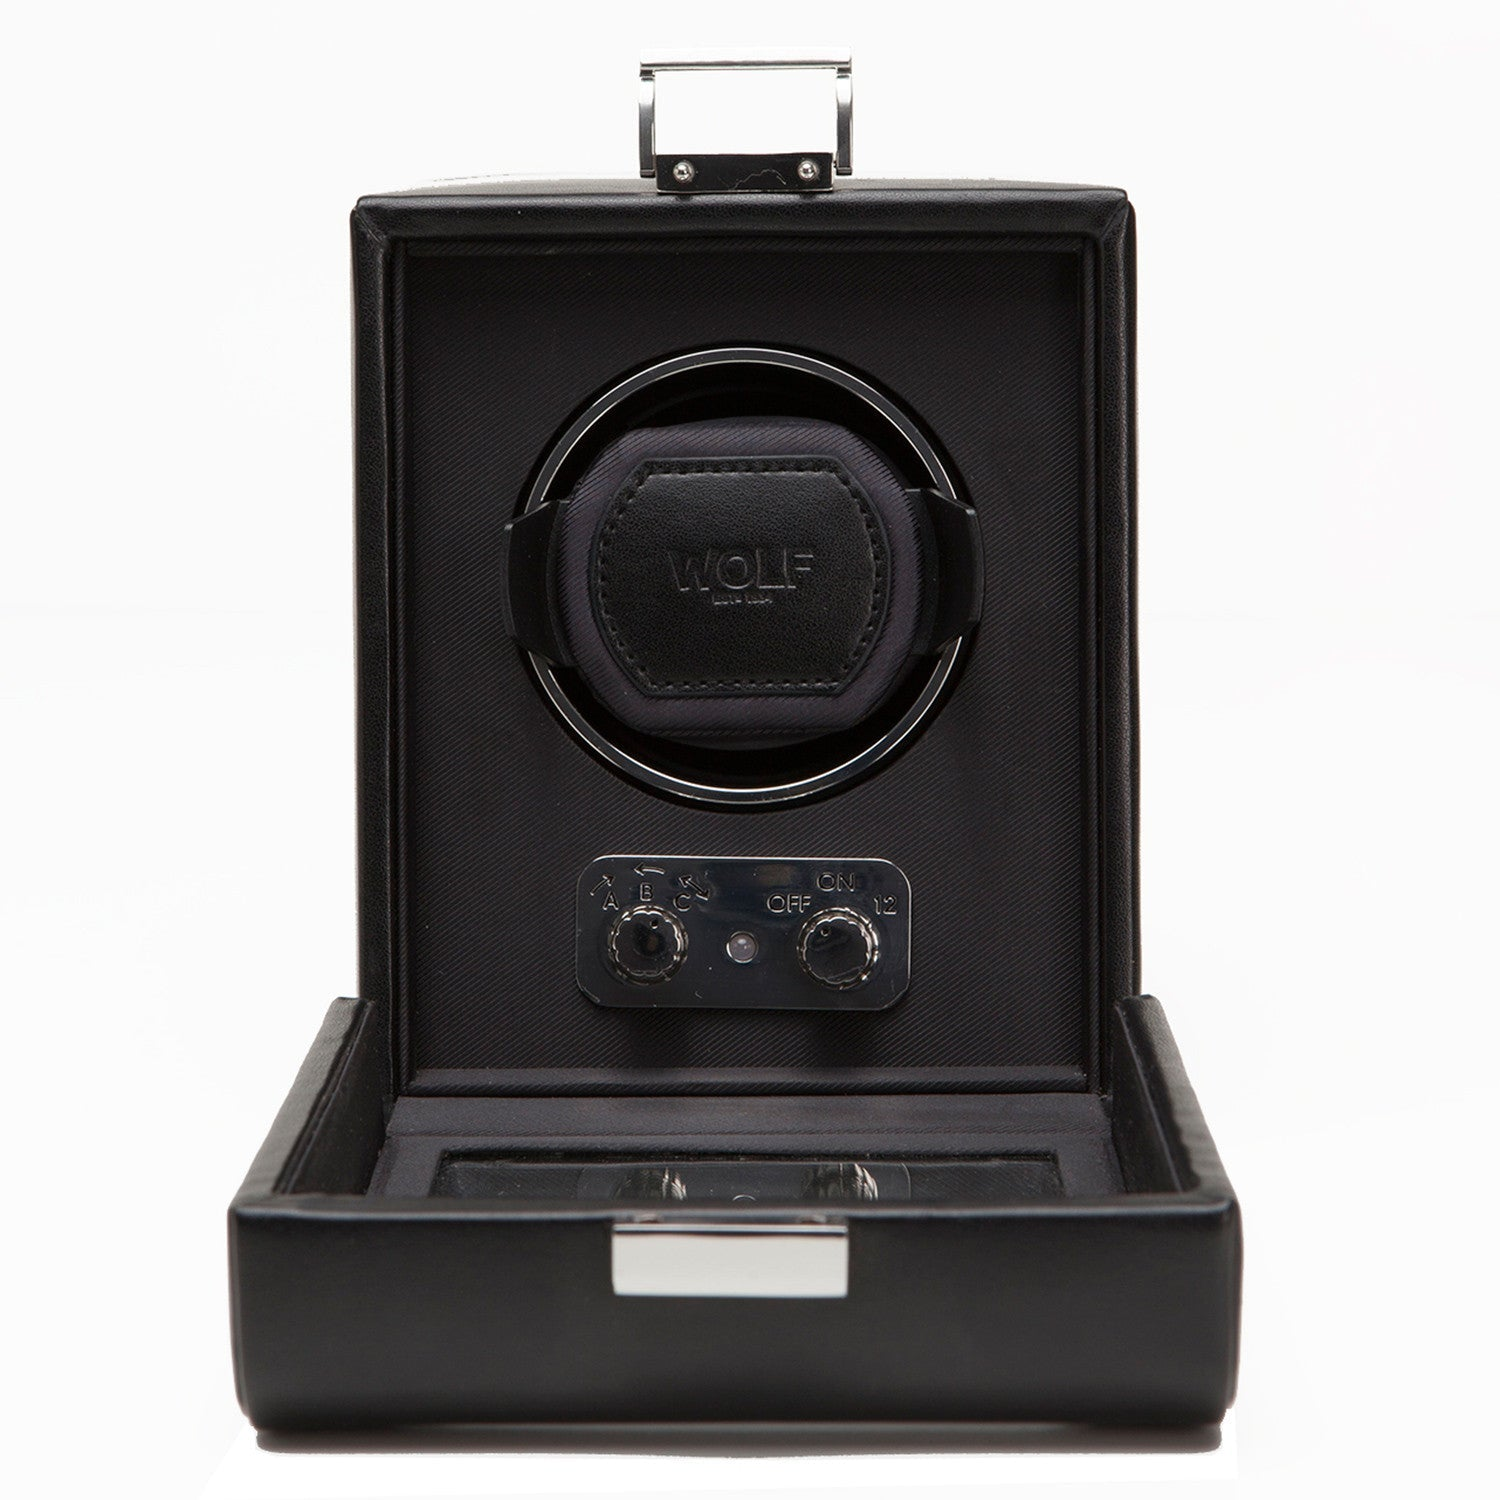 WOLF Heritage Single Watch Winder with Cover Black by Burton Blake